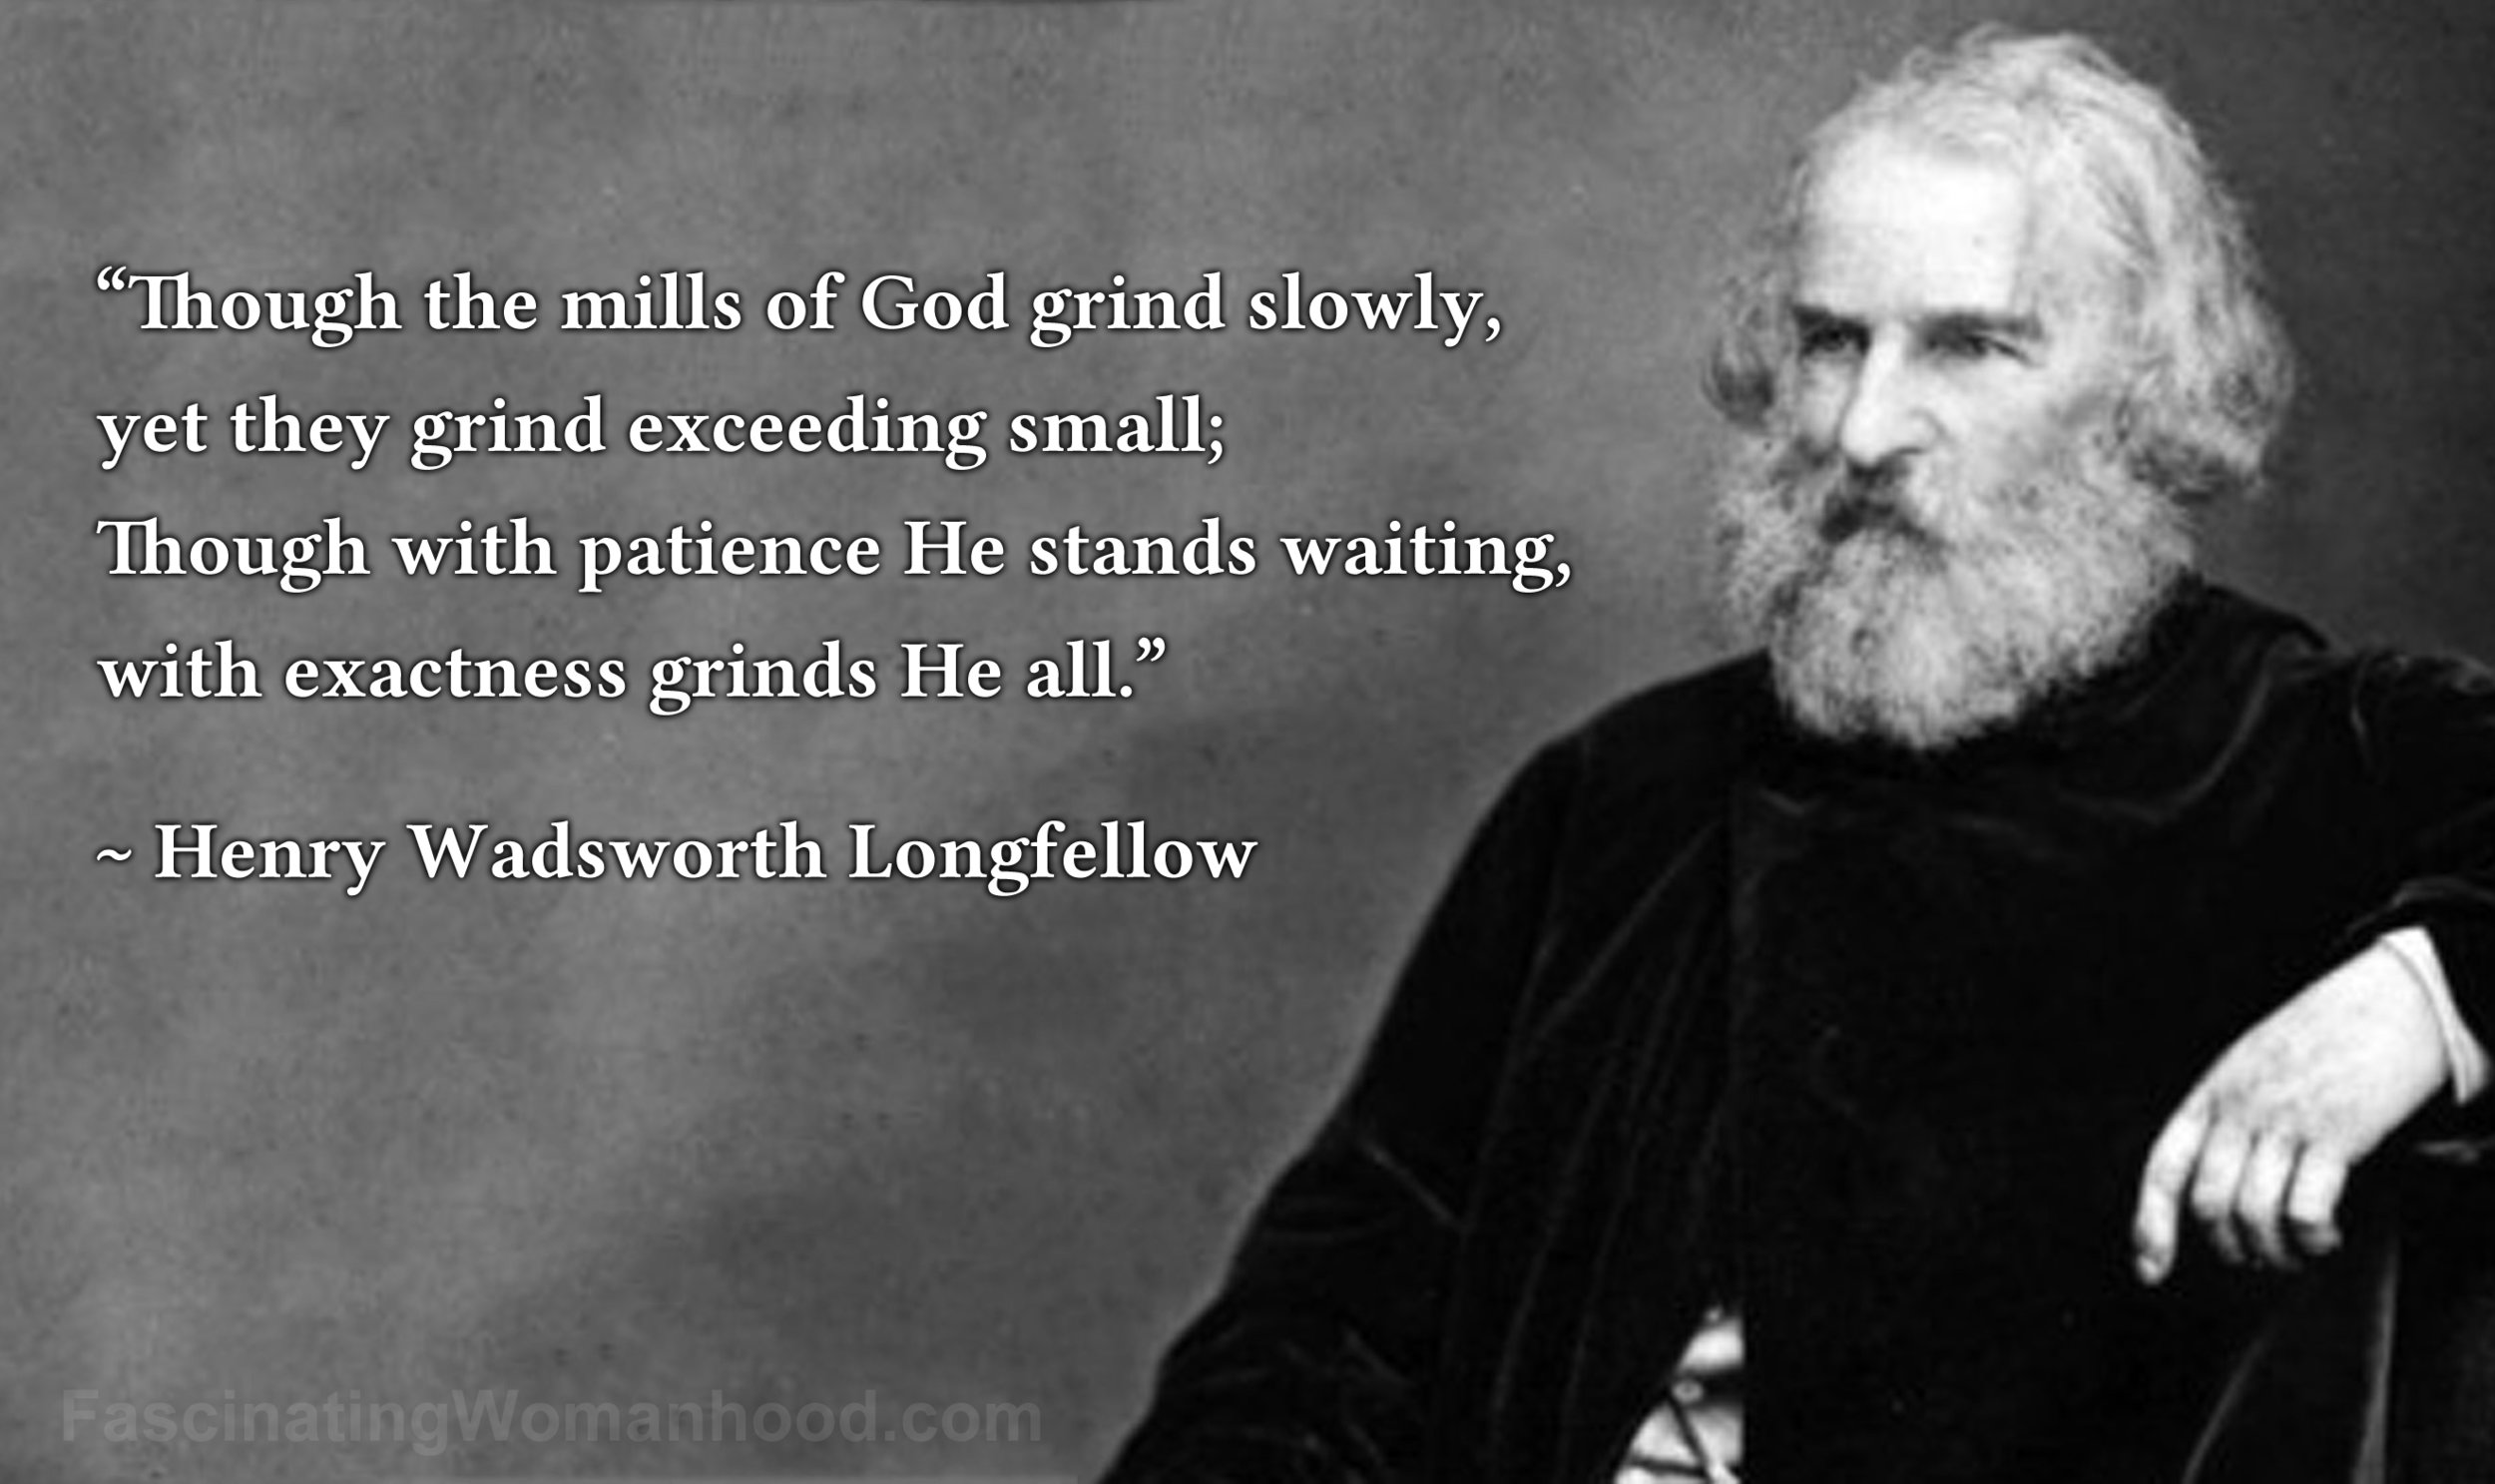 A Quote by Henry Wadsworth Longfellow.jpg